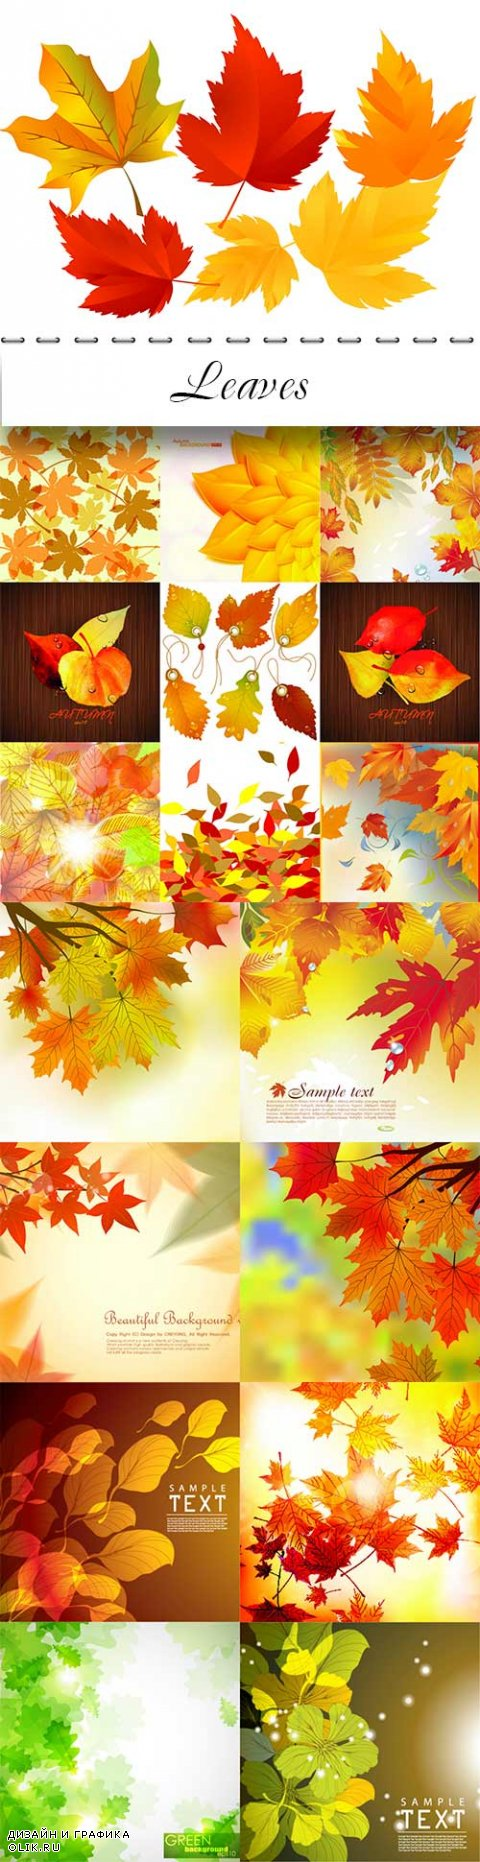 Autumn vector backgrounds collection - Leaves